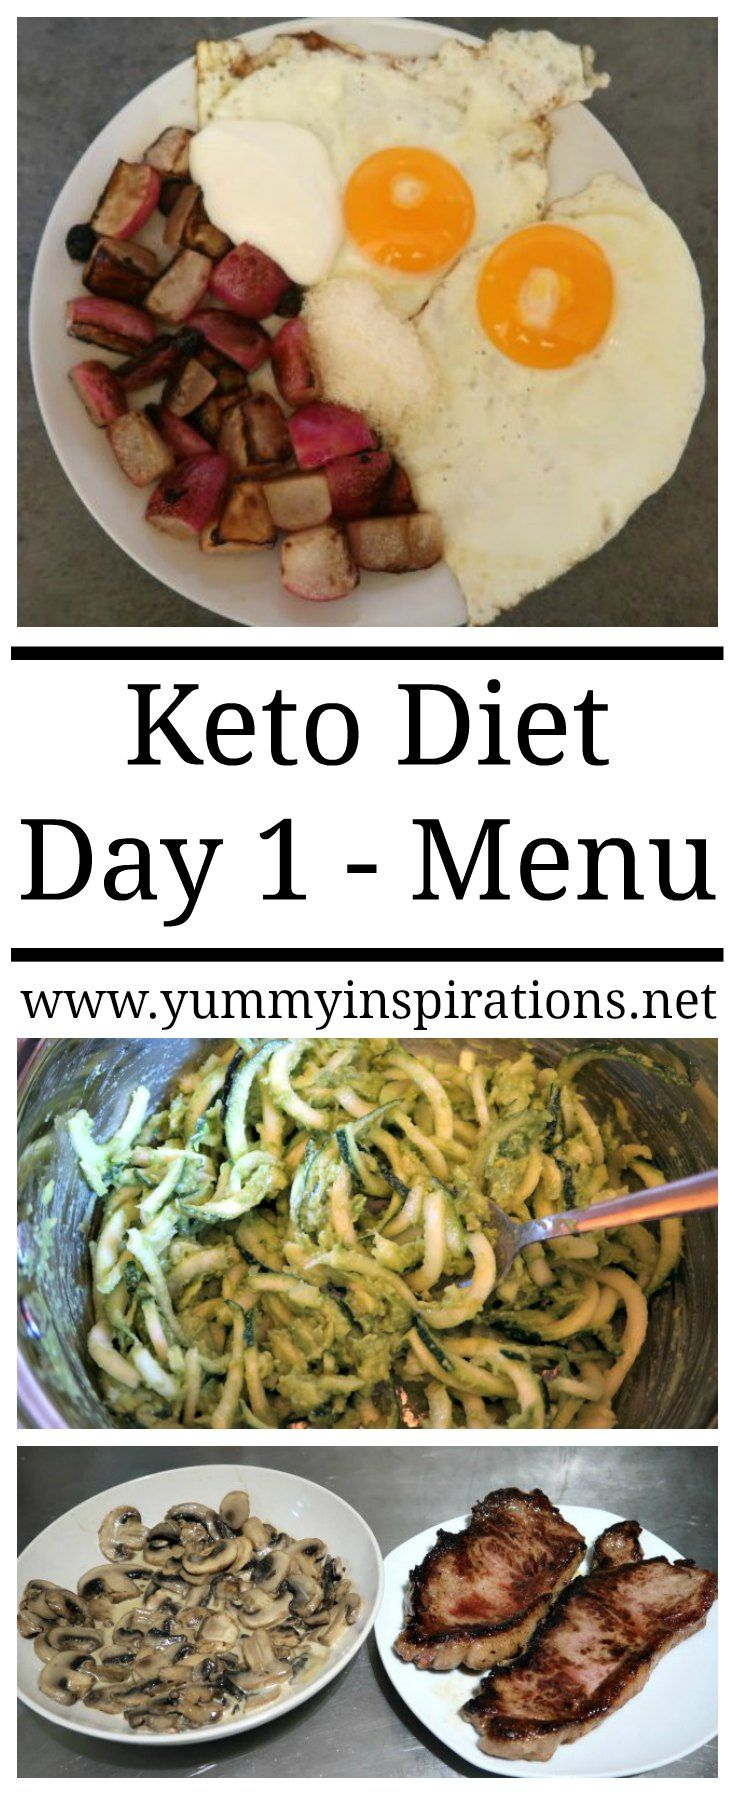 Keto Day 1 - Meals & Tips for surviving your 1st day on the low carb ketogenic diet - with a menu and meal plan ideas for day 1 and beyond. Great whether you're wanting weight loss or clean eating for good health.